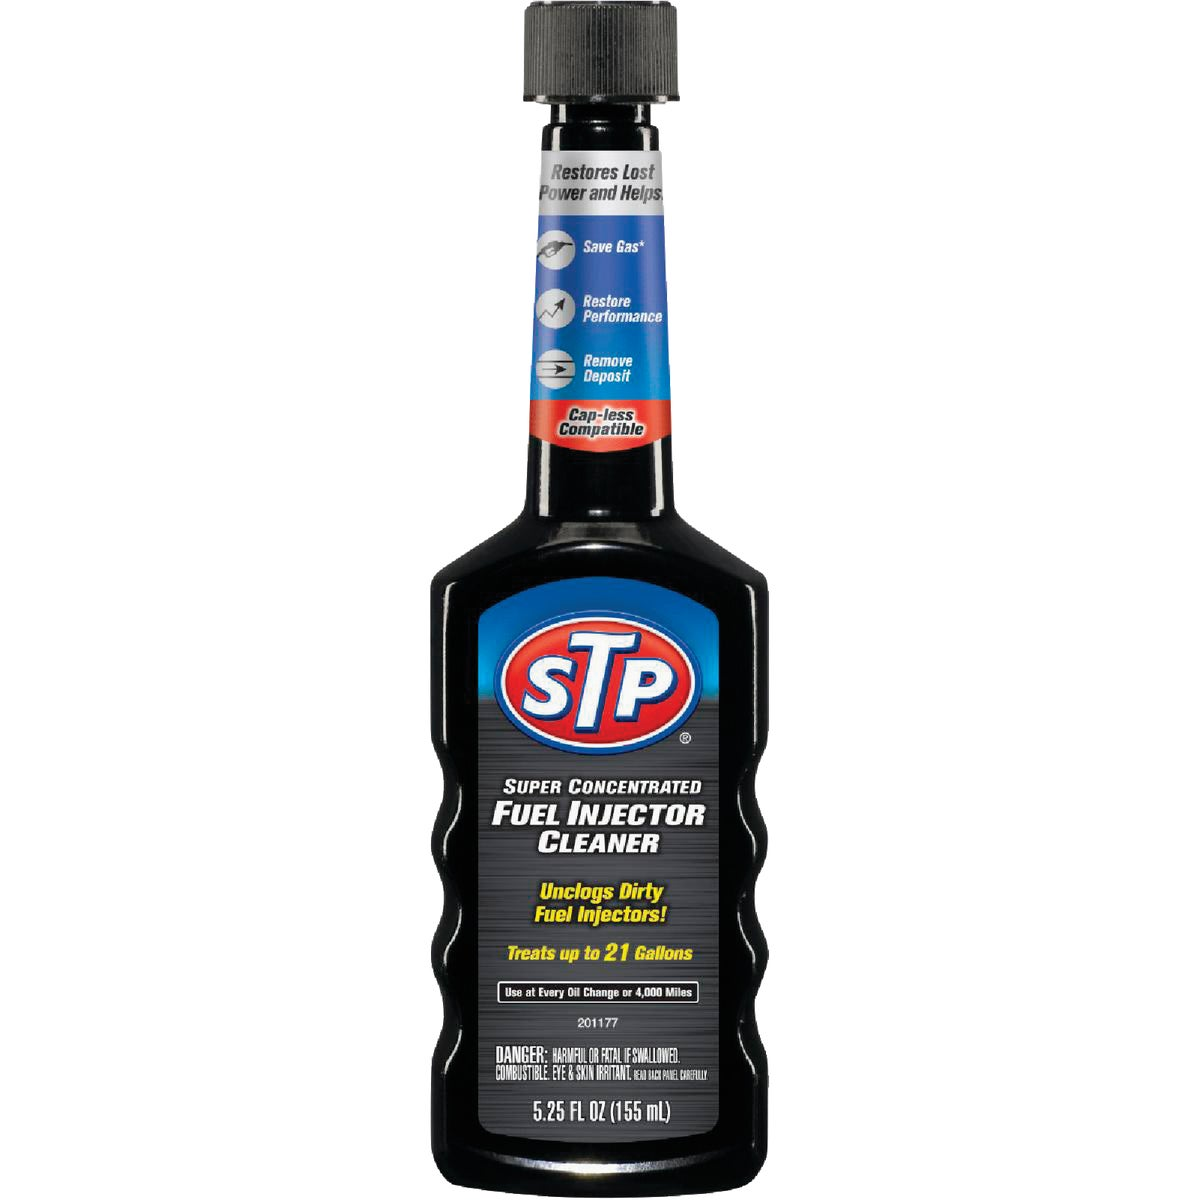 5.25STP FUEL INJ CLEANER